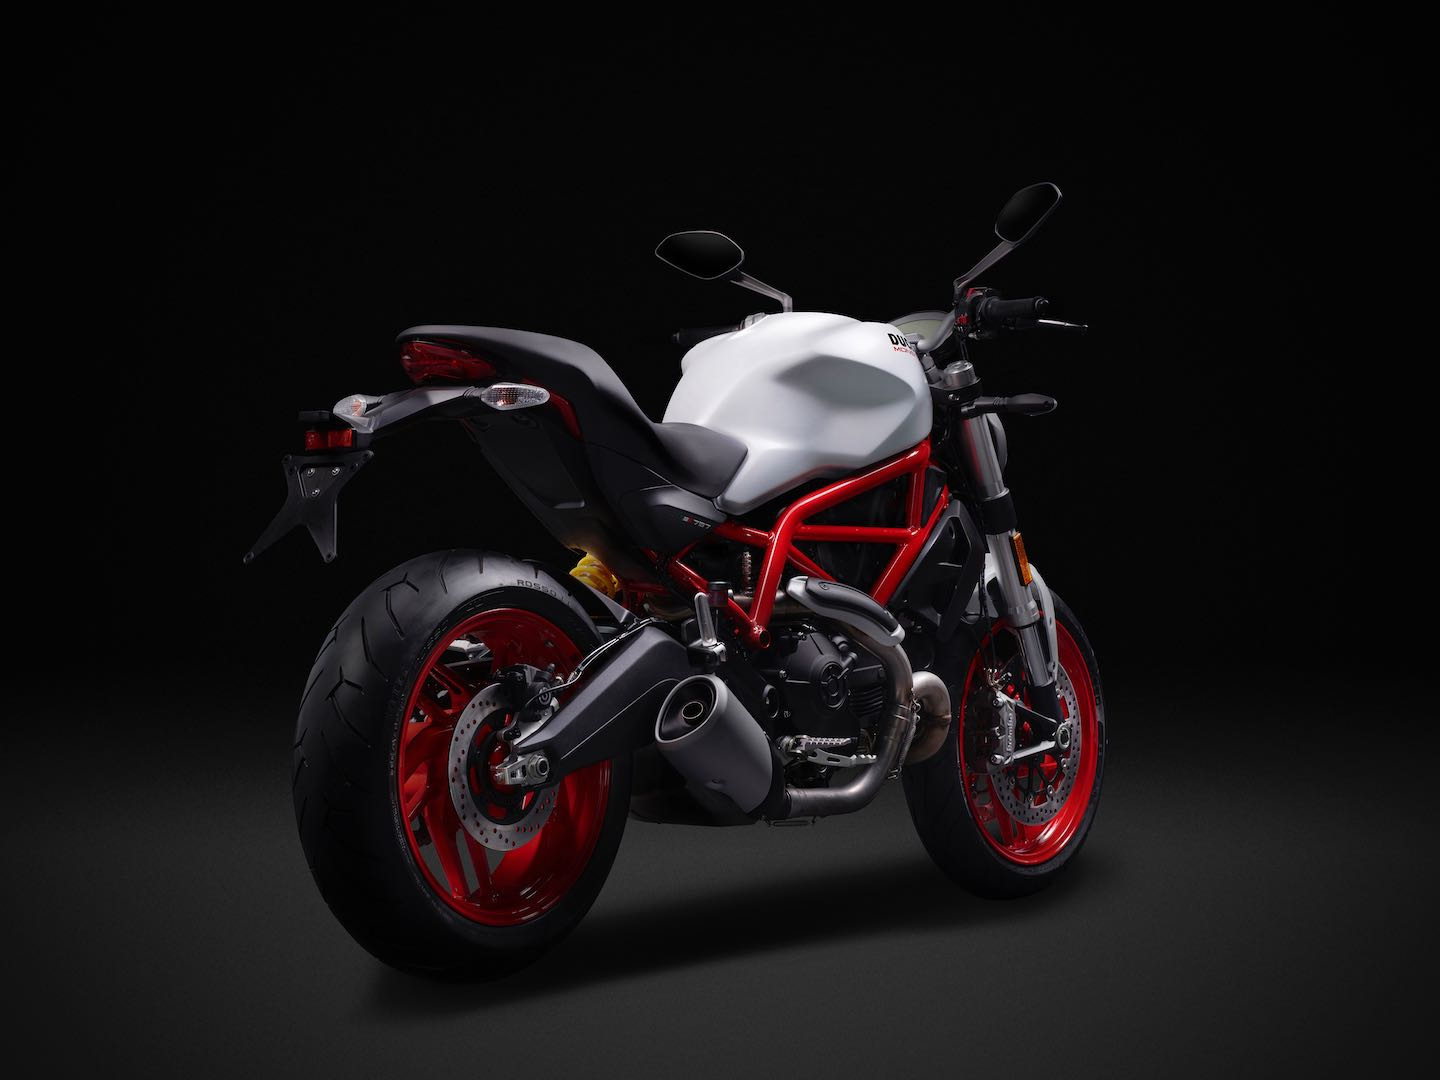 2017-ducati-monster-797-fast-facts-2